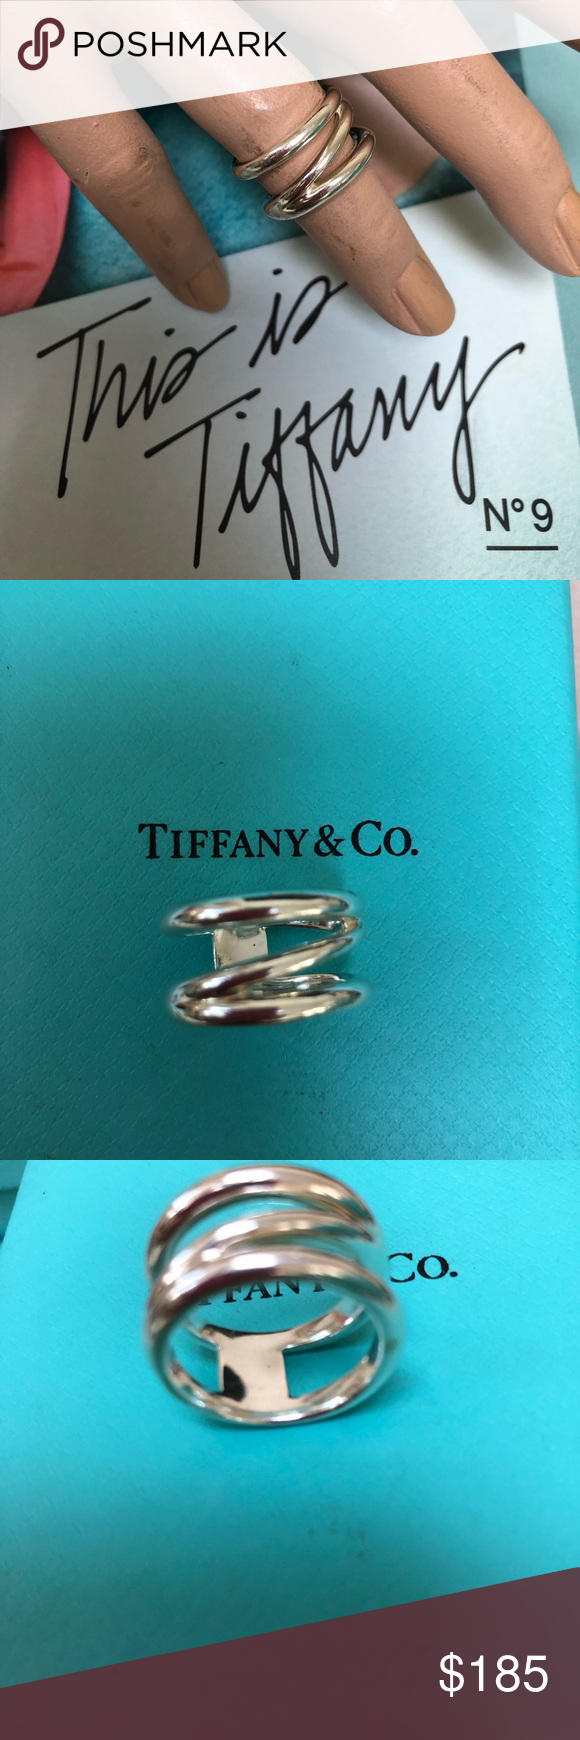 17+ Where is tiffany and co jewelry made info